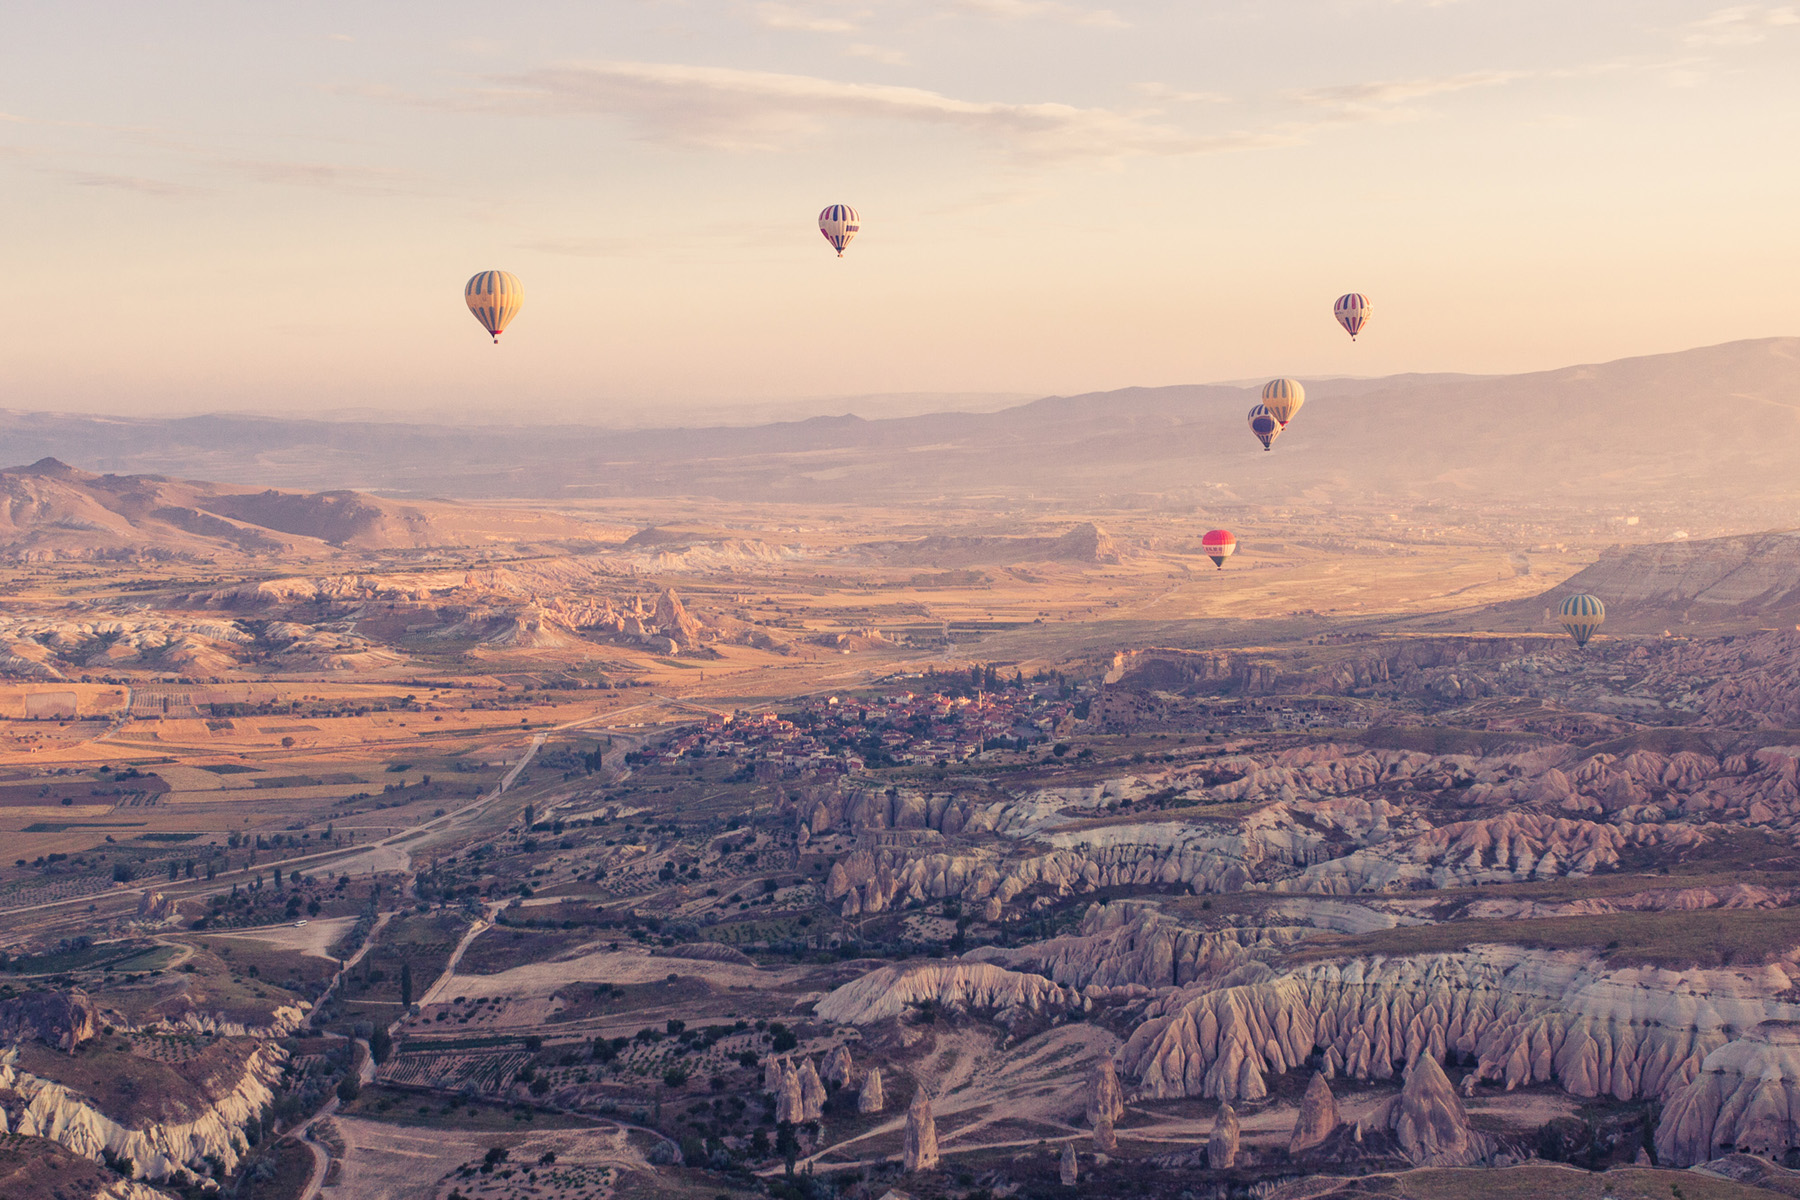 Hilly and hot-air balloon landscape 52196